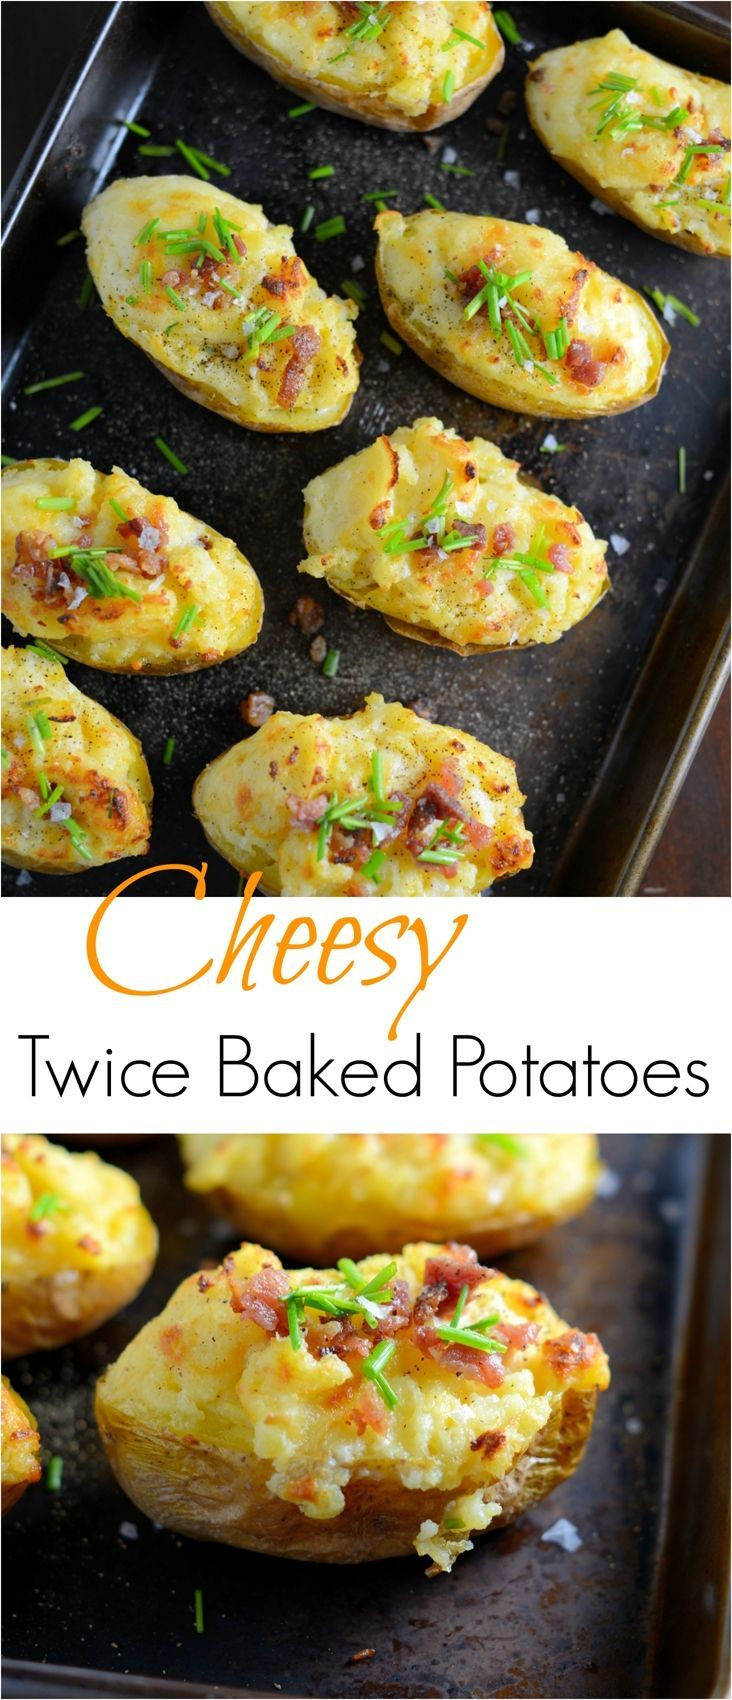 These cheesy twice baked potatoes are the BEST! My whole family gobbles them up, so I make double. The secret ingredient really makes these POP and stand out from the rest.